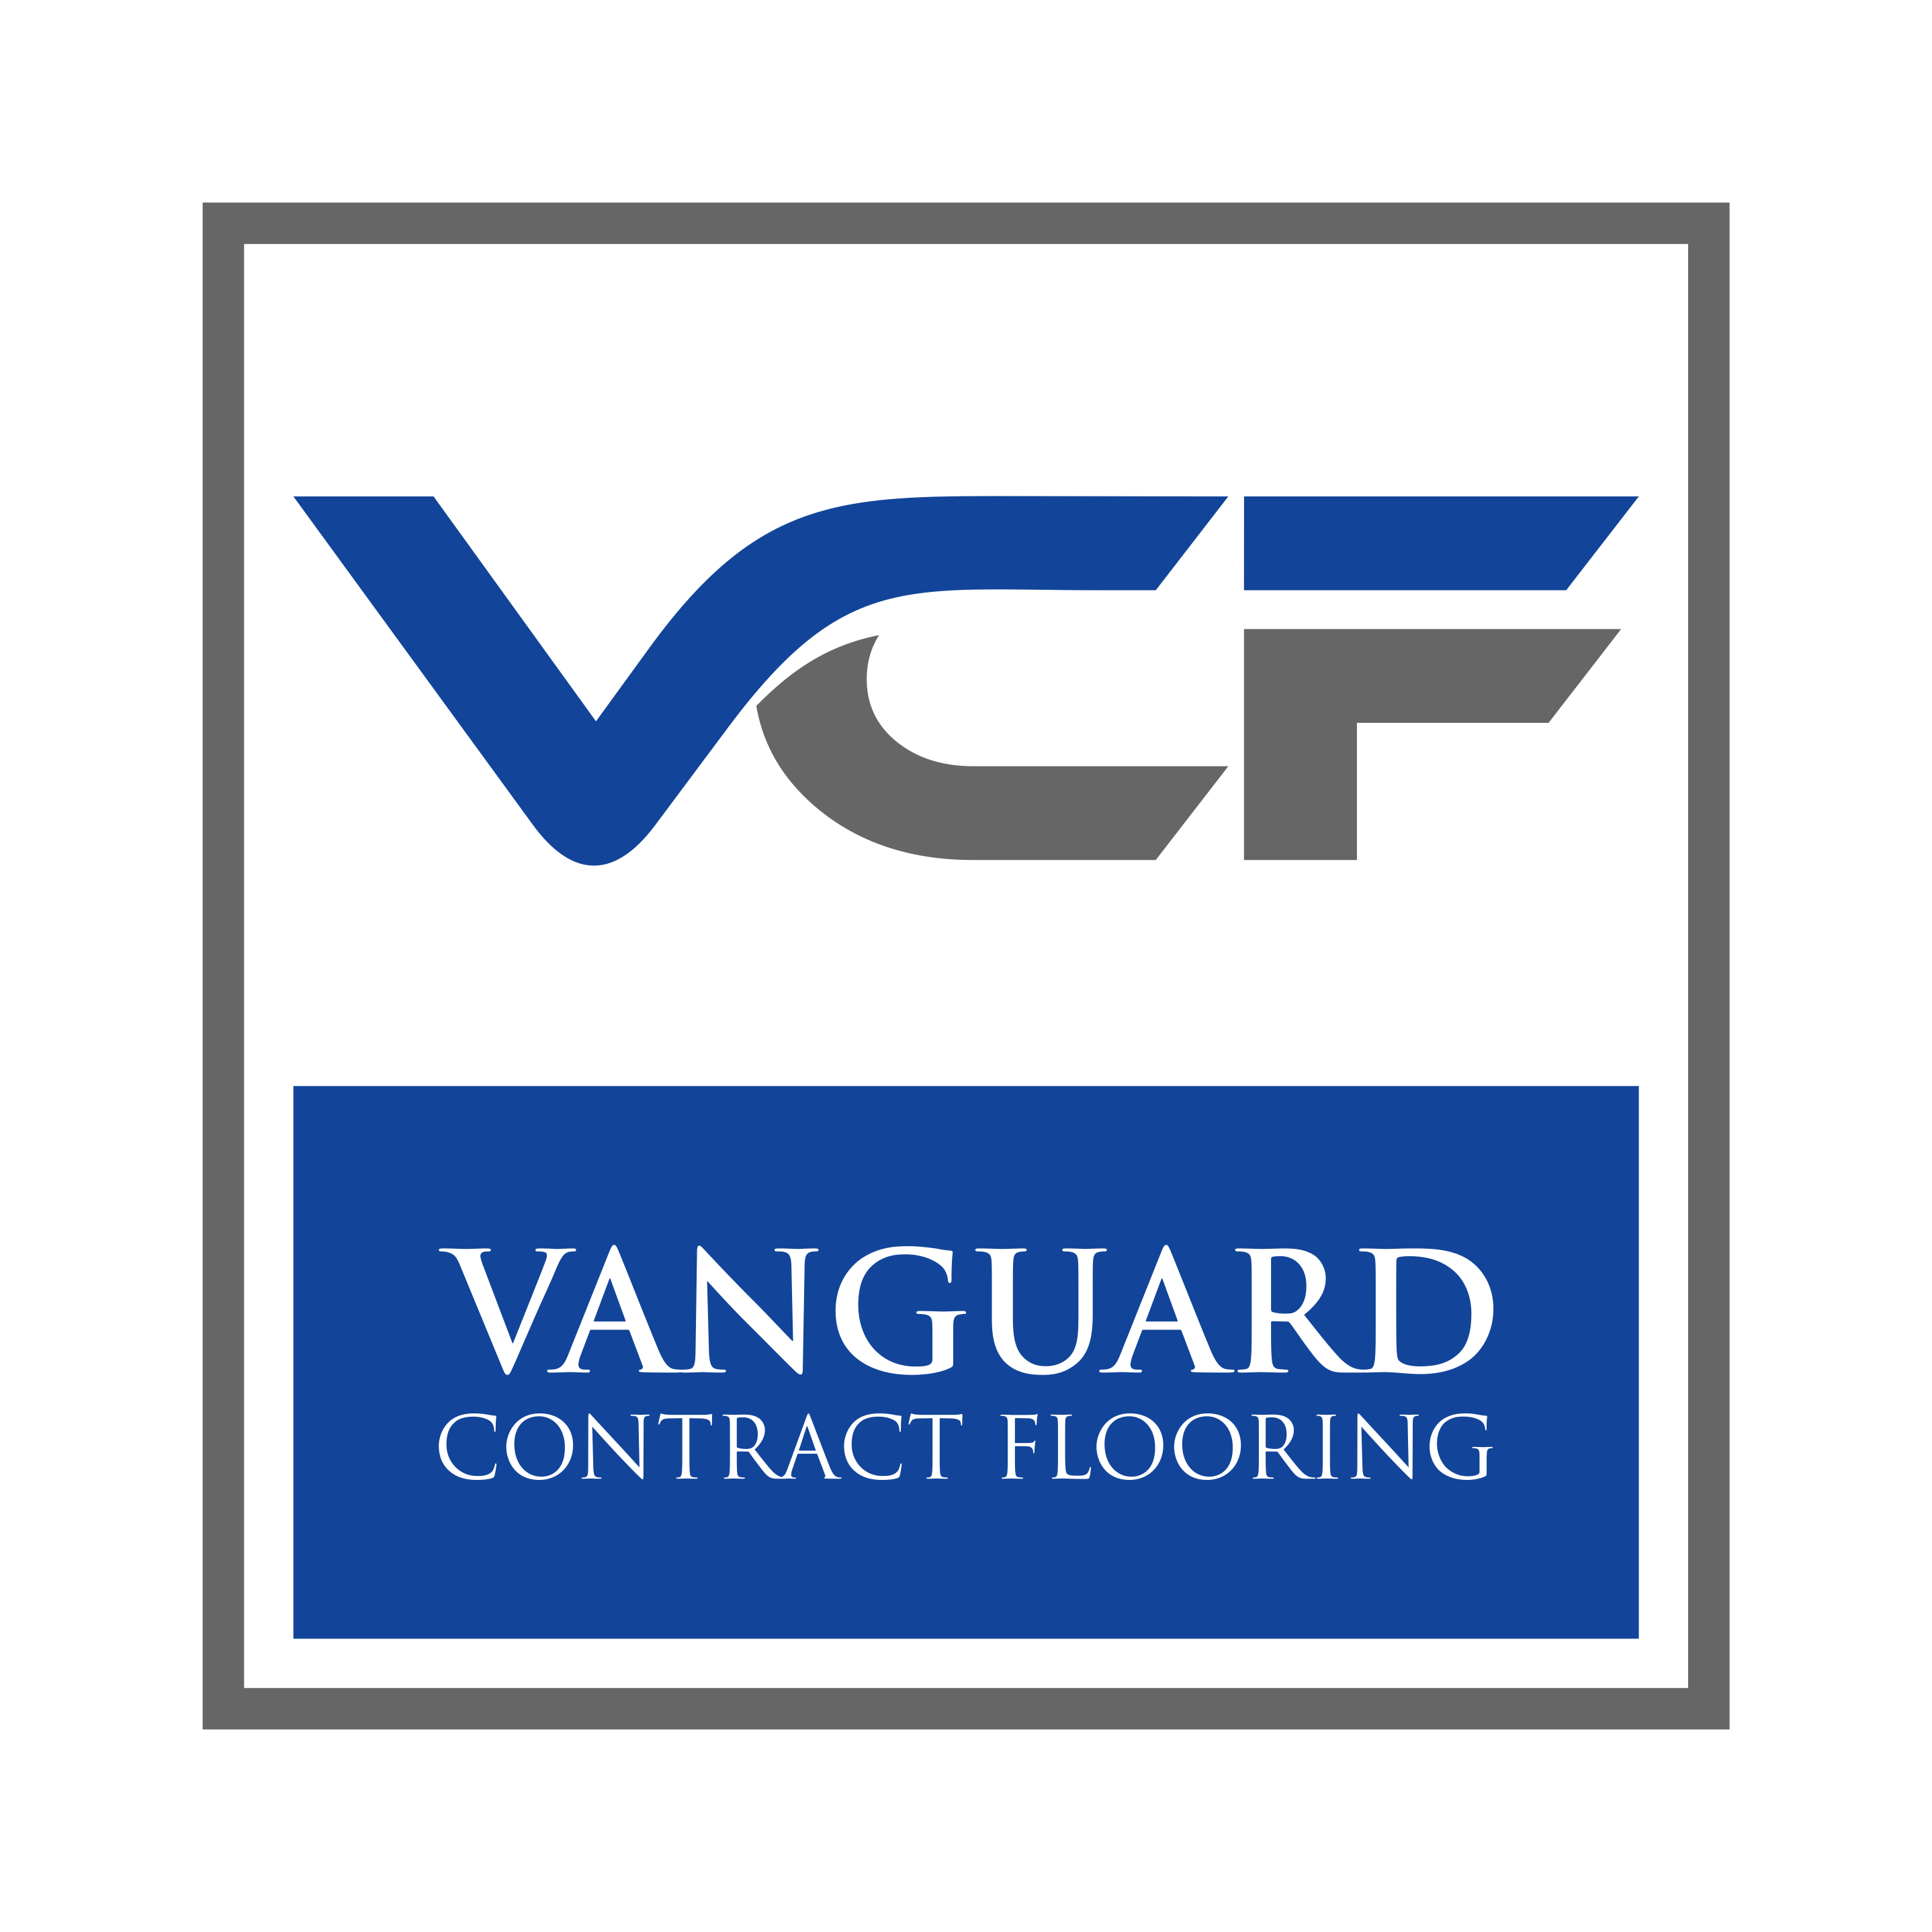 Looking for a classic logo for a startup professional flooring company